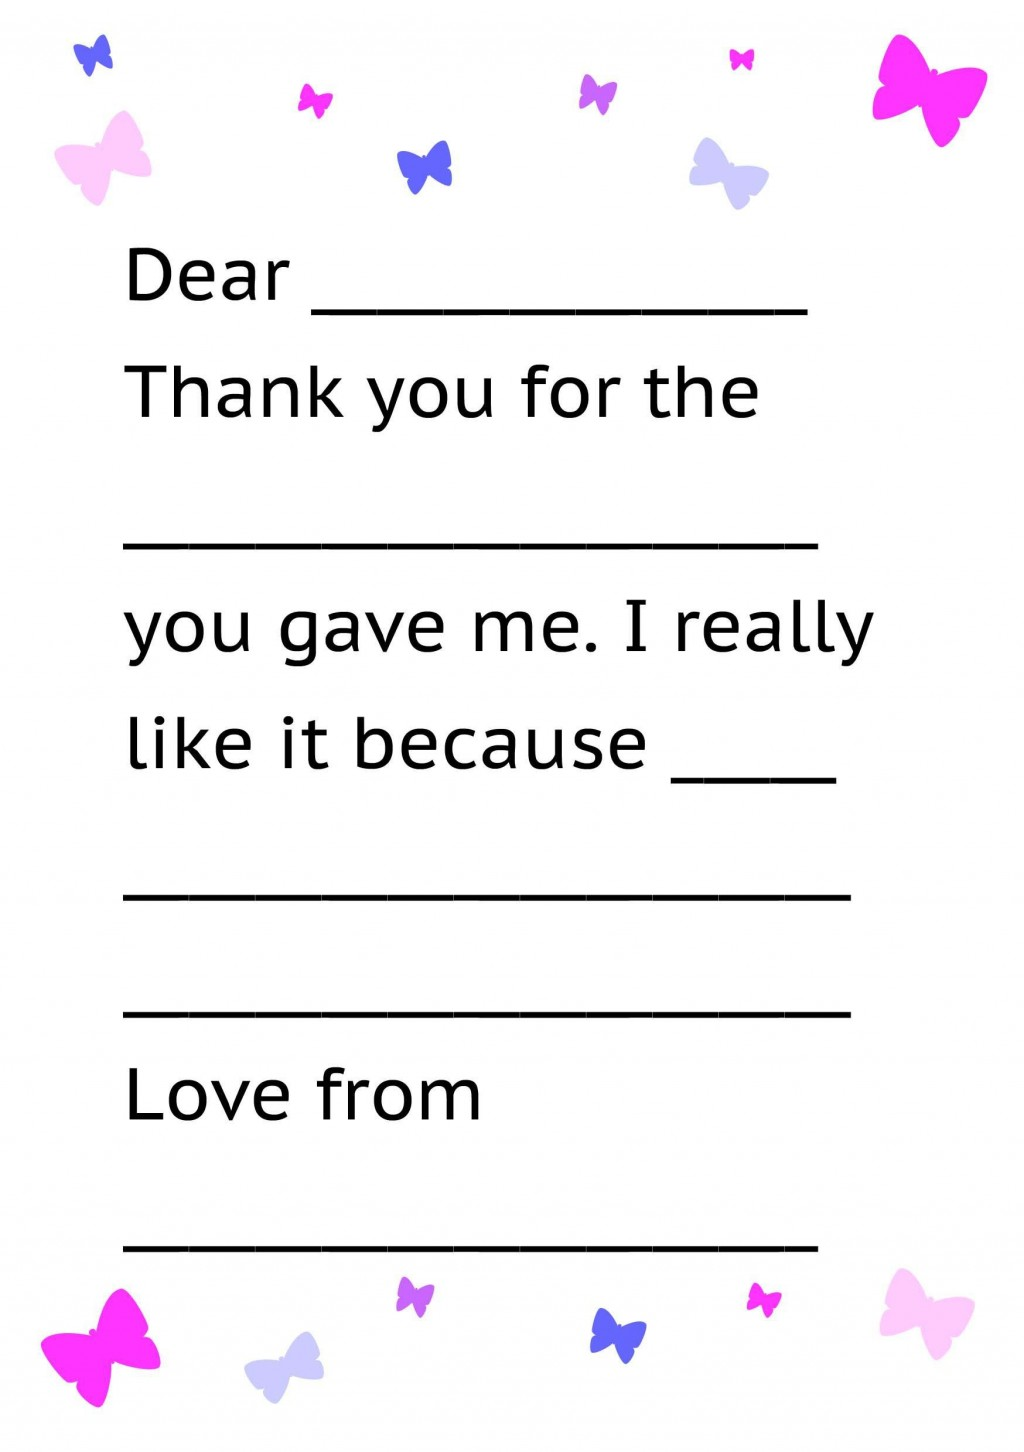 001 Sensational Thank You Note Template For Kid Example  Kids Child Pdf LetterLarge